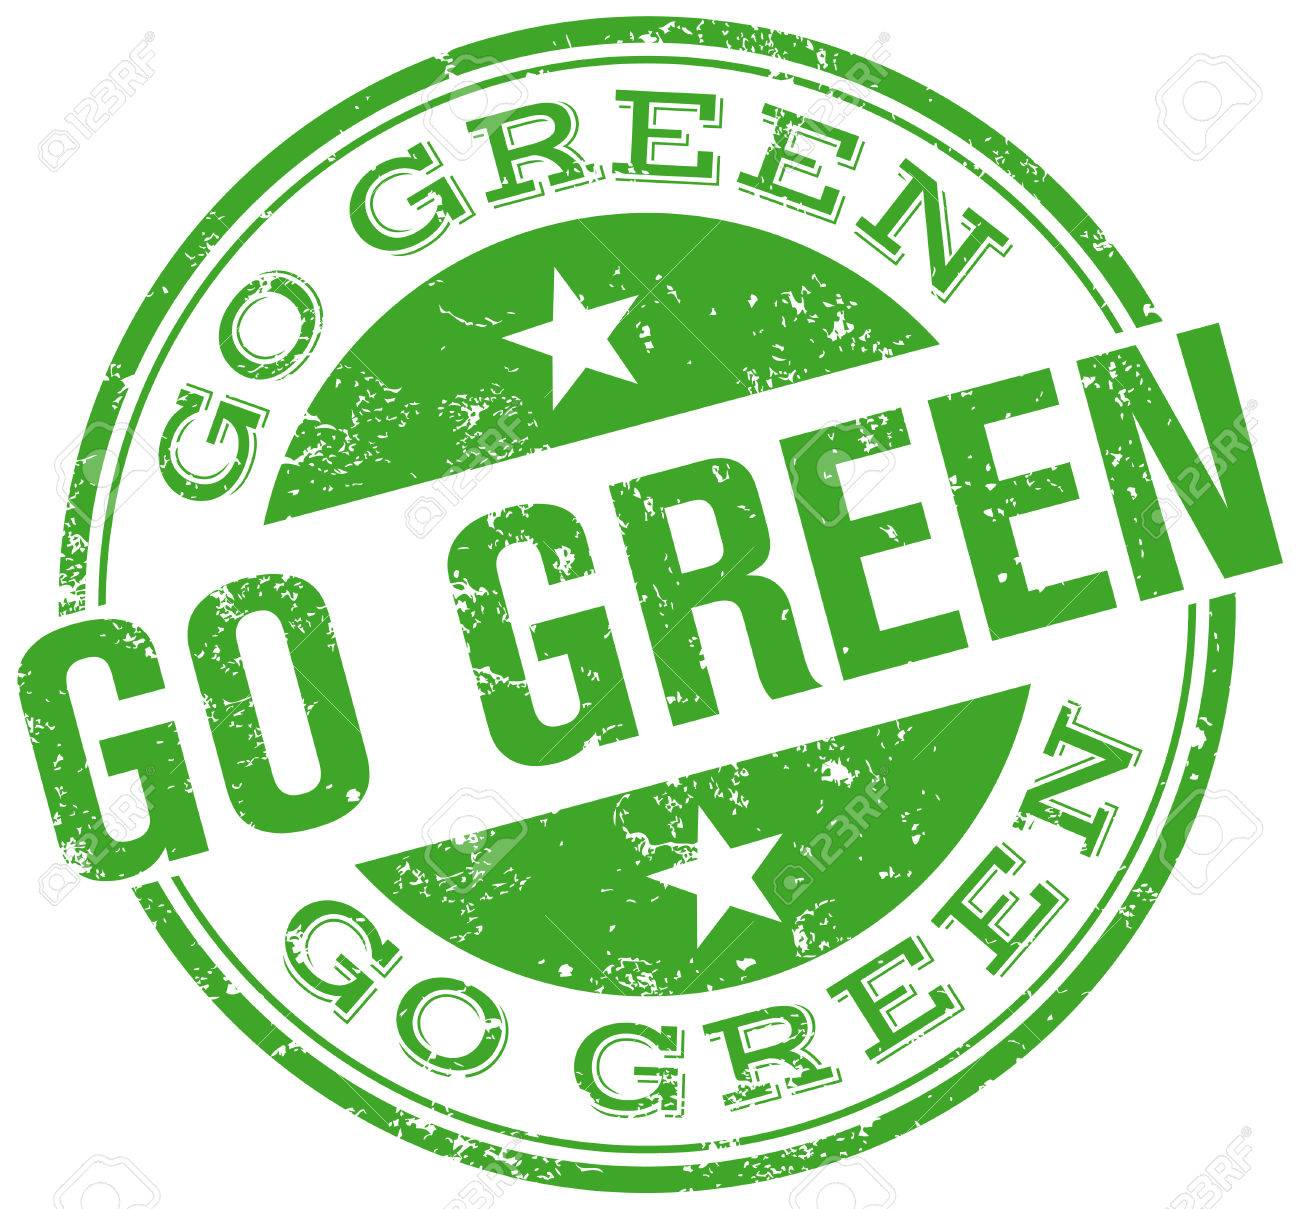 Go green clipart 8 » Clipart Station.